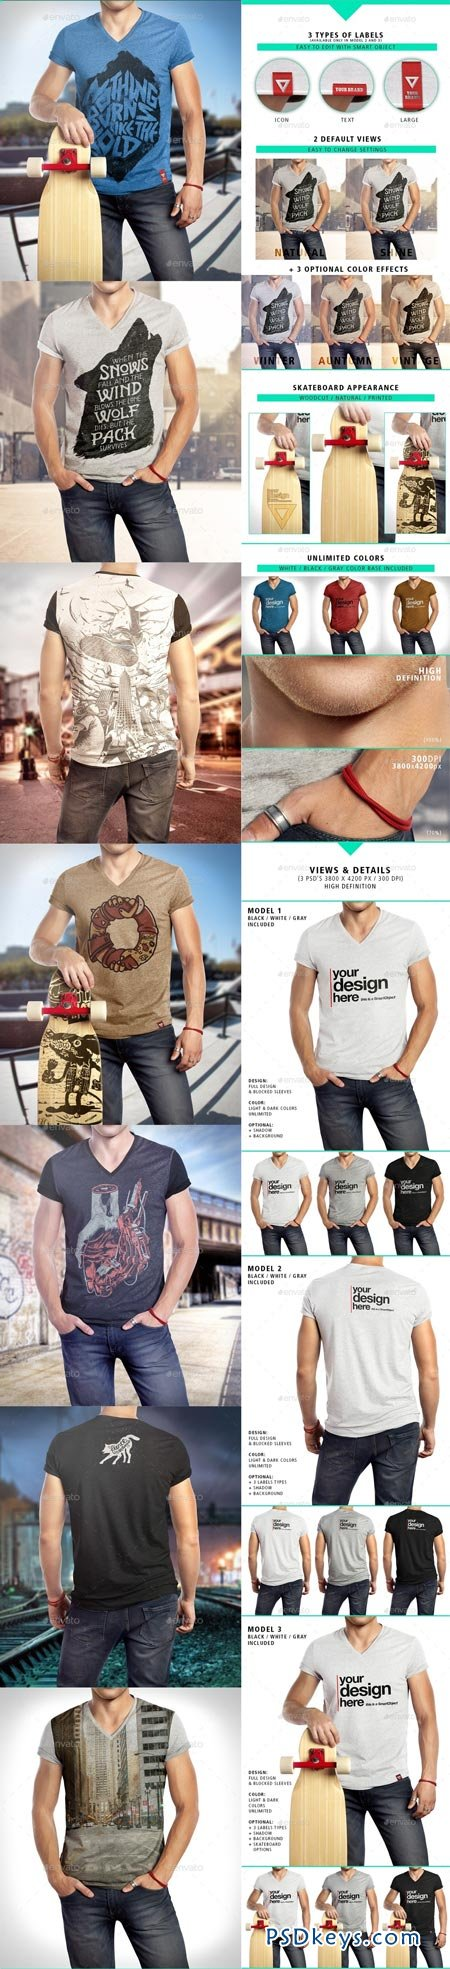 T-Shirt Vneck Man Mock-up 9030662